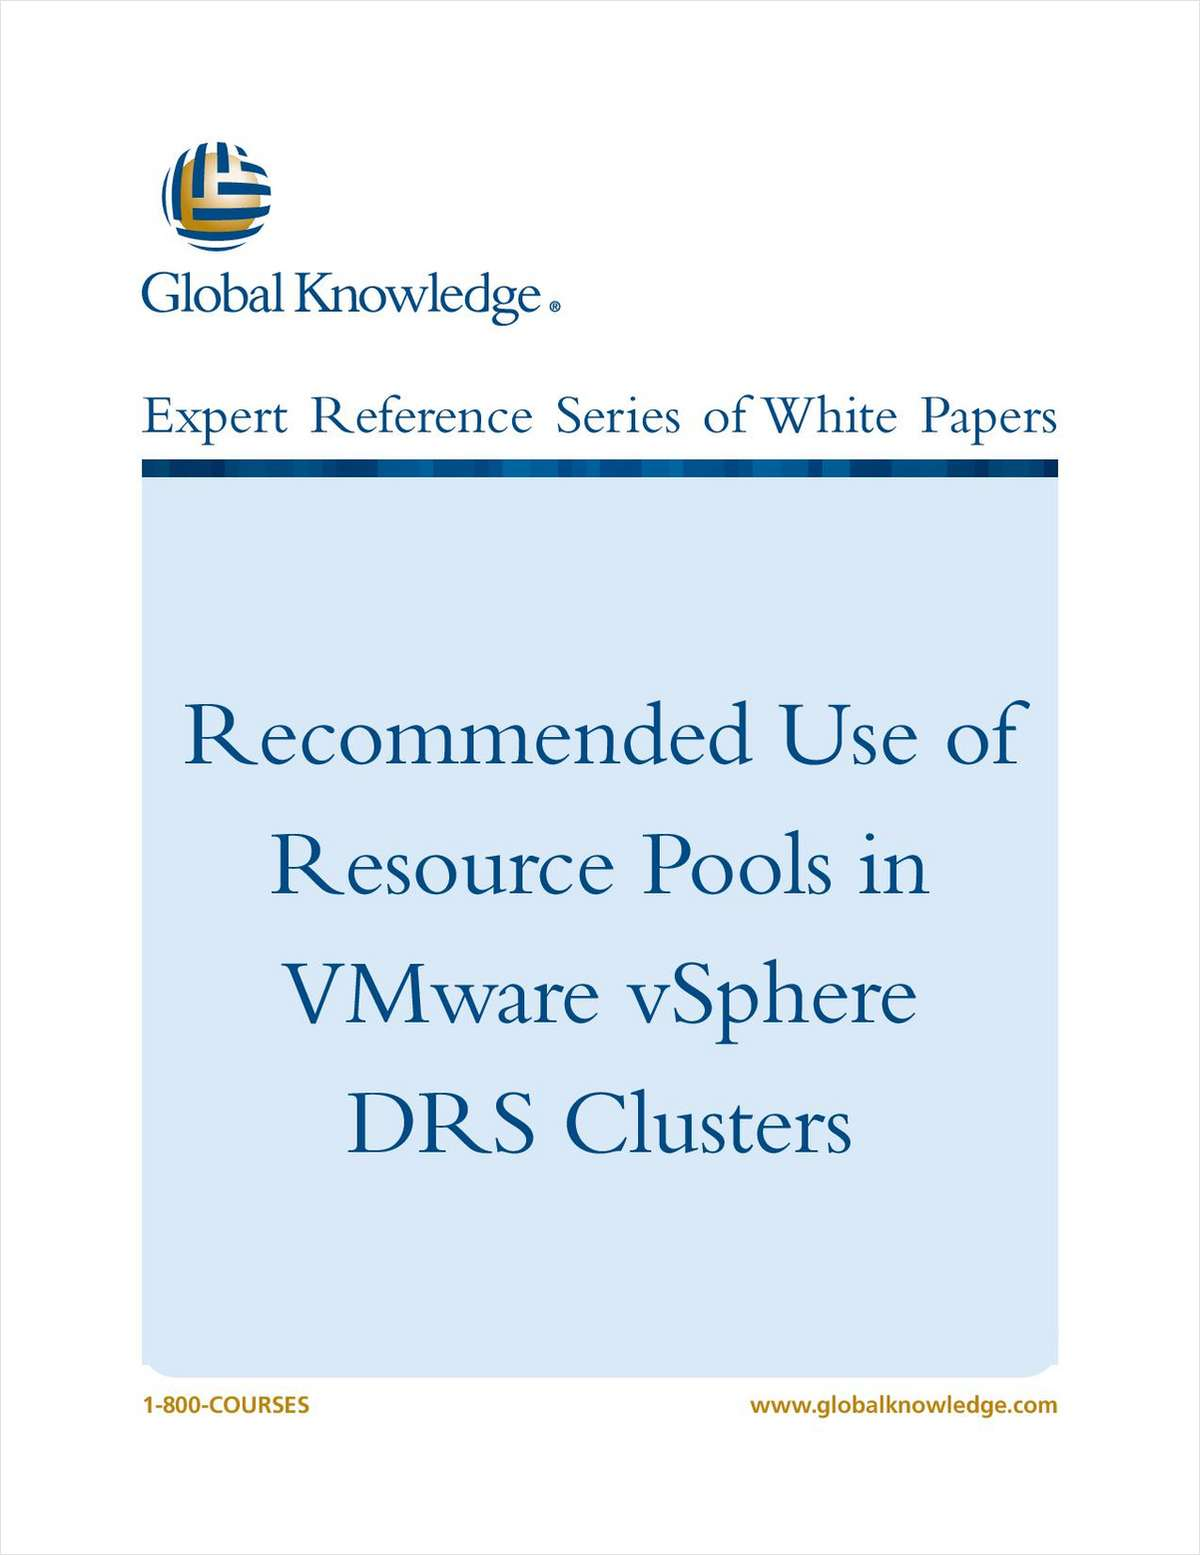 Recommended Use of Resource Pools in VMware vSphere DRS Clusters